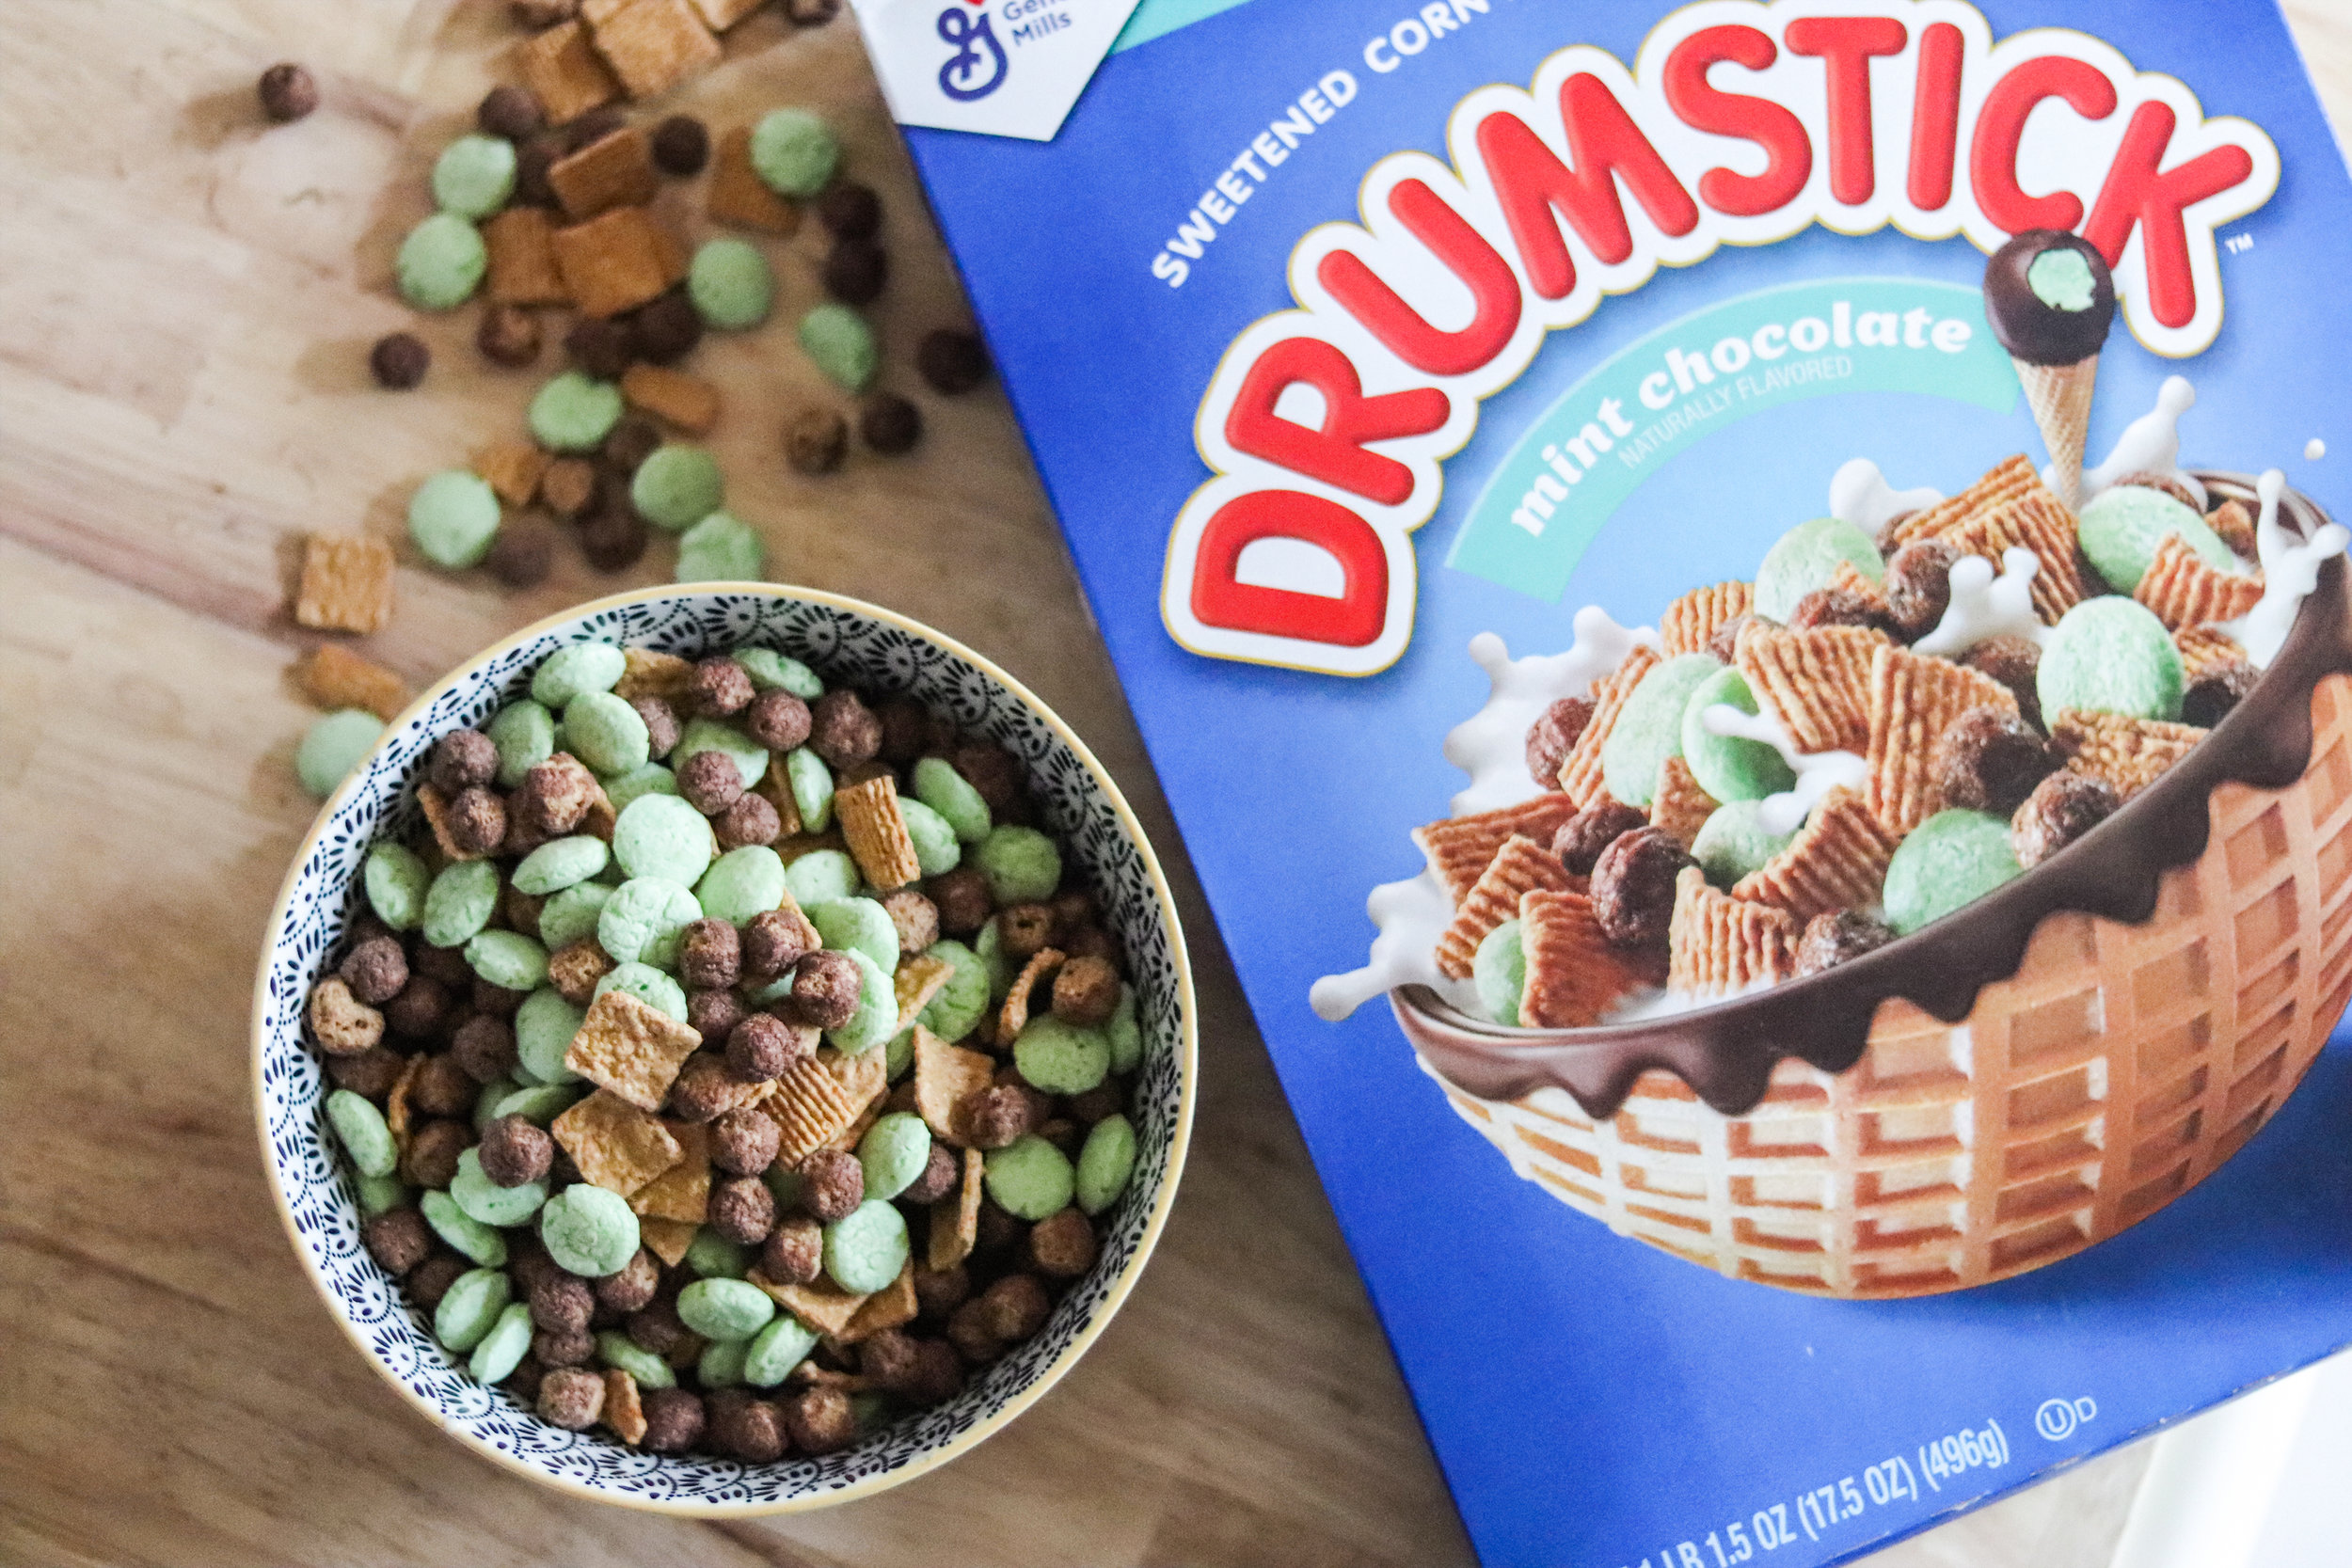 NEW Drumstick cereal